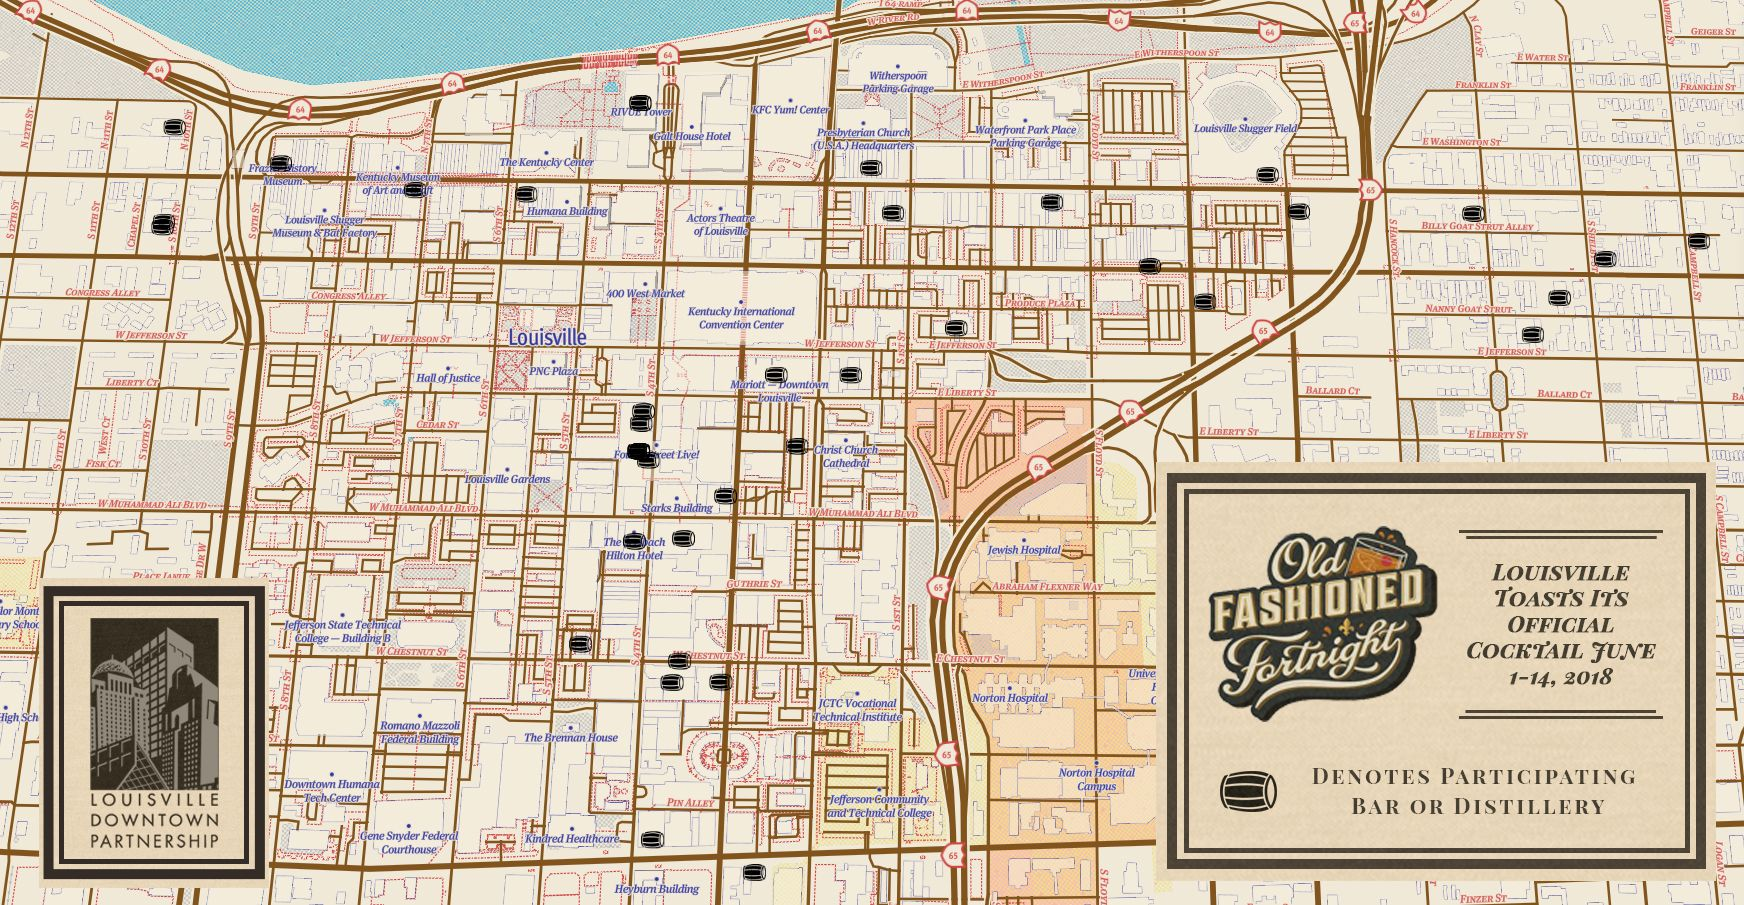 June 1 - 14 - Old Fashioned Fortnight - Louisville Events ... Activities Map Of Bourbon Street on map of excalibur, map of cherokee street, map of sodium street, map of hard rock, map of dunes, map of romance, map of new haven street, map of americana, map of julia street cruise terminal, map of st. charles avenue, map of louis armstrong park, map of driftwood, map of geary street, map of holiday, map of boulder station, map of harrah's, map of eclipse, map of sam's town, map of blue bayou water park, map of tchoupitoulas street,